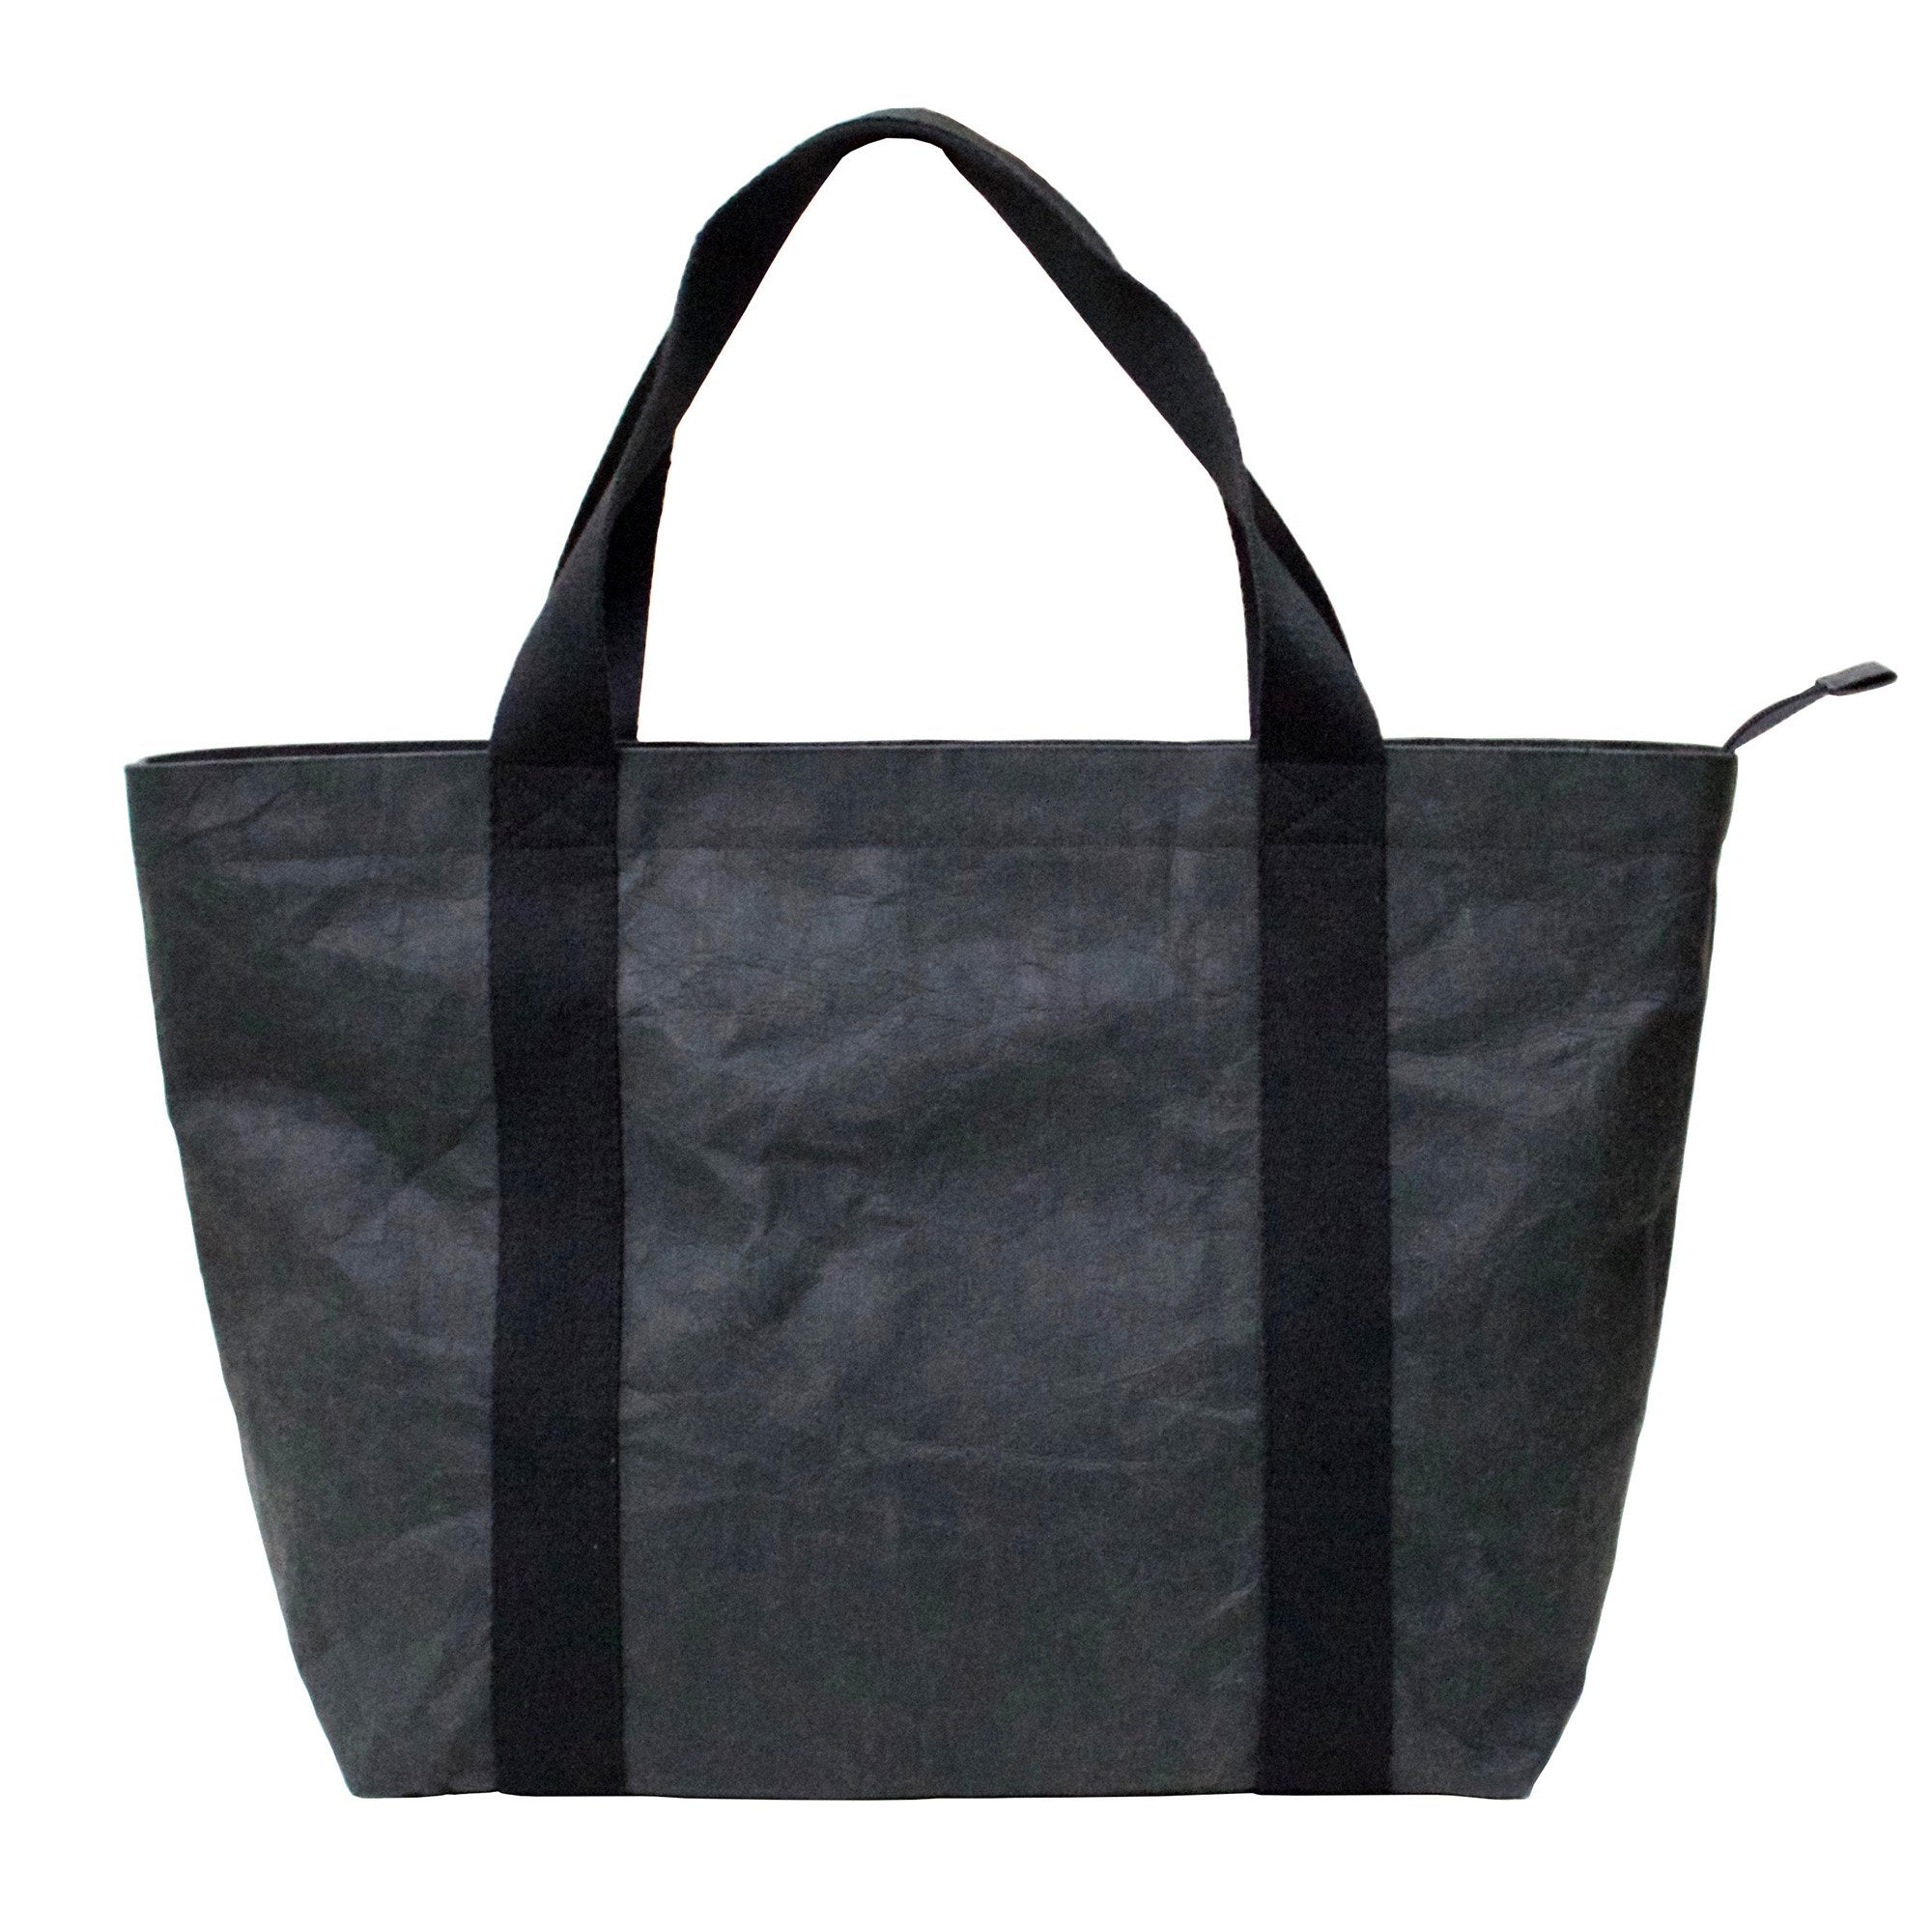 Athena Black Tote Bag made from eco-friendly Washable Paper